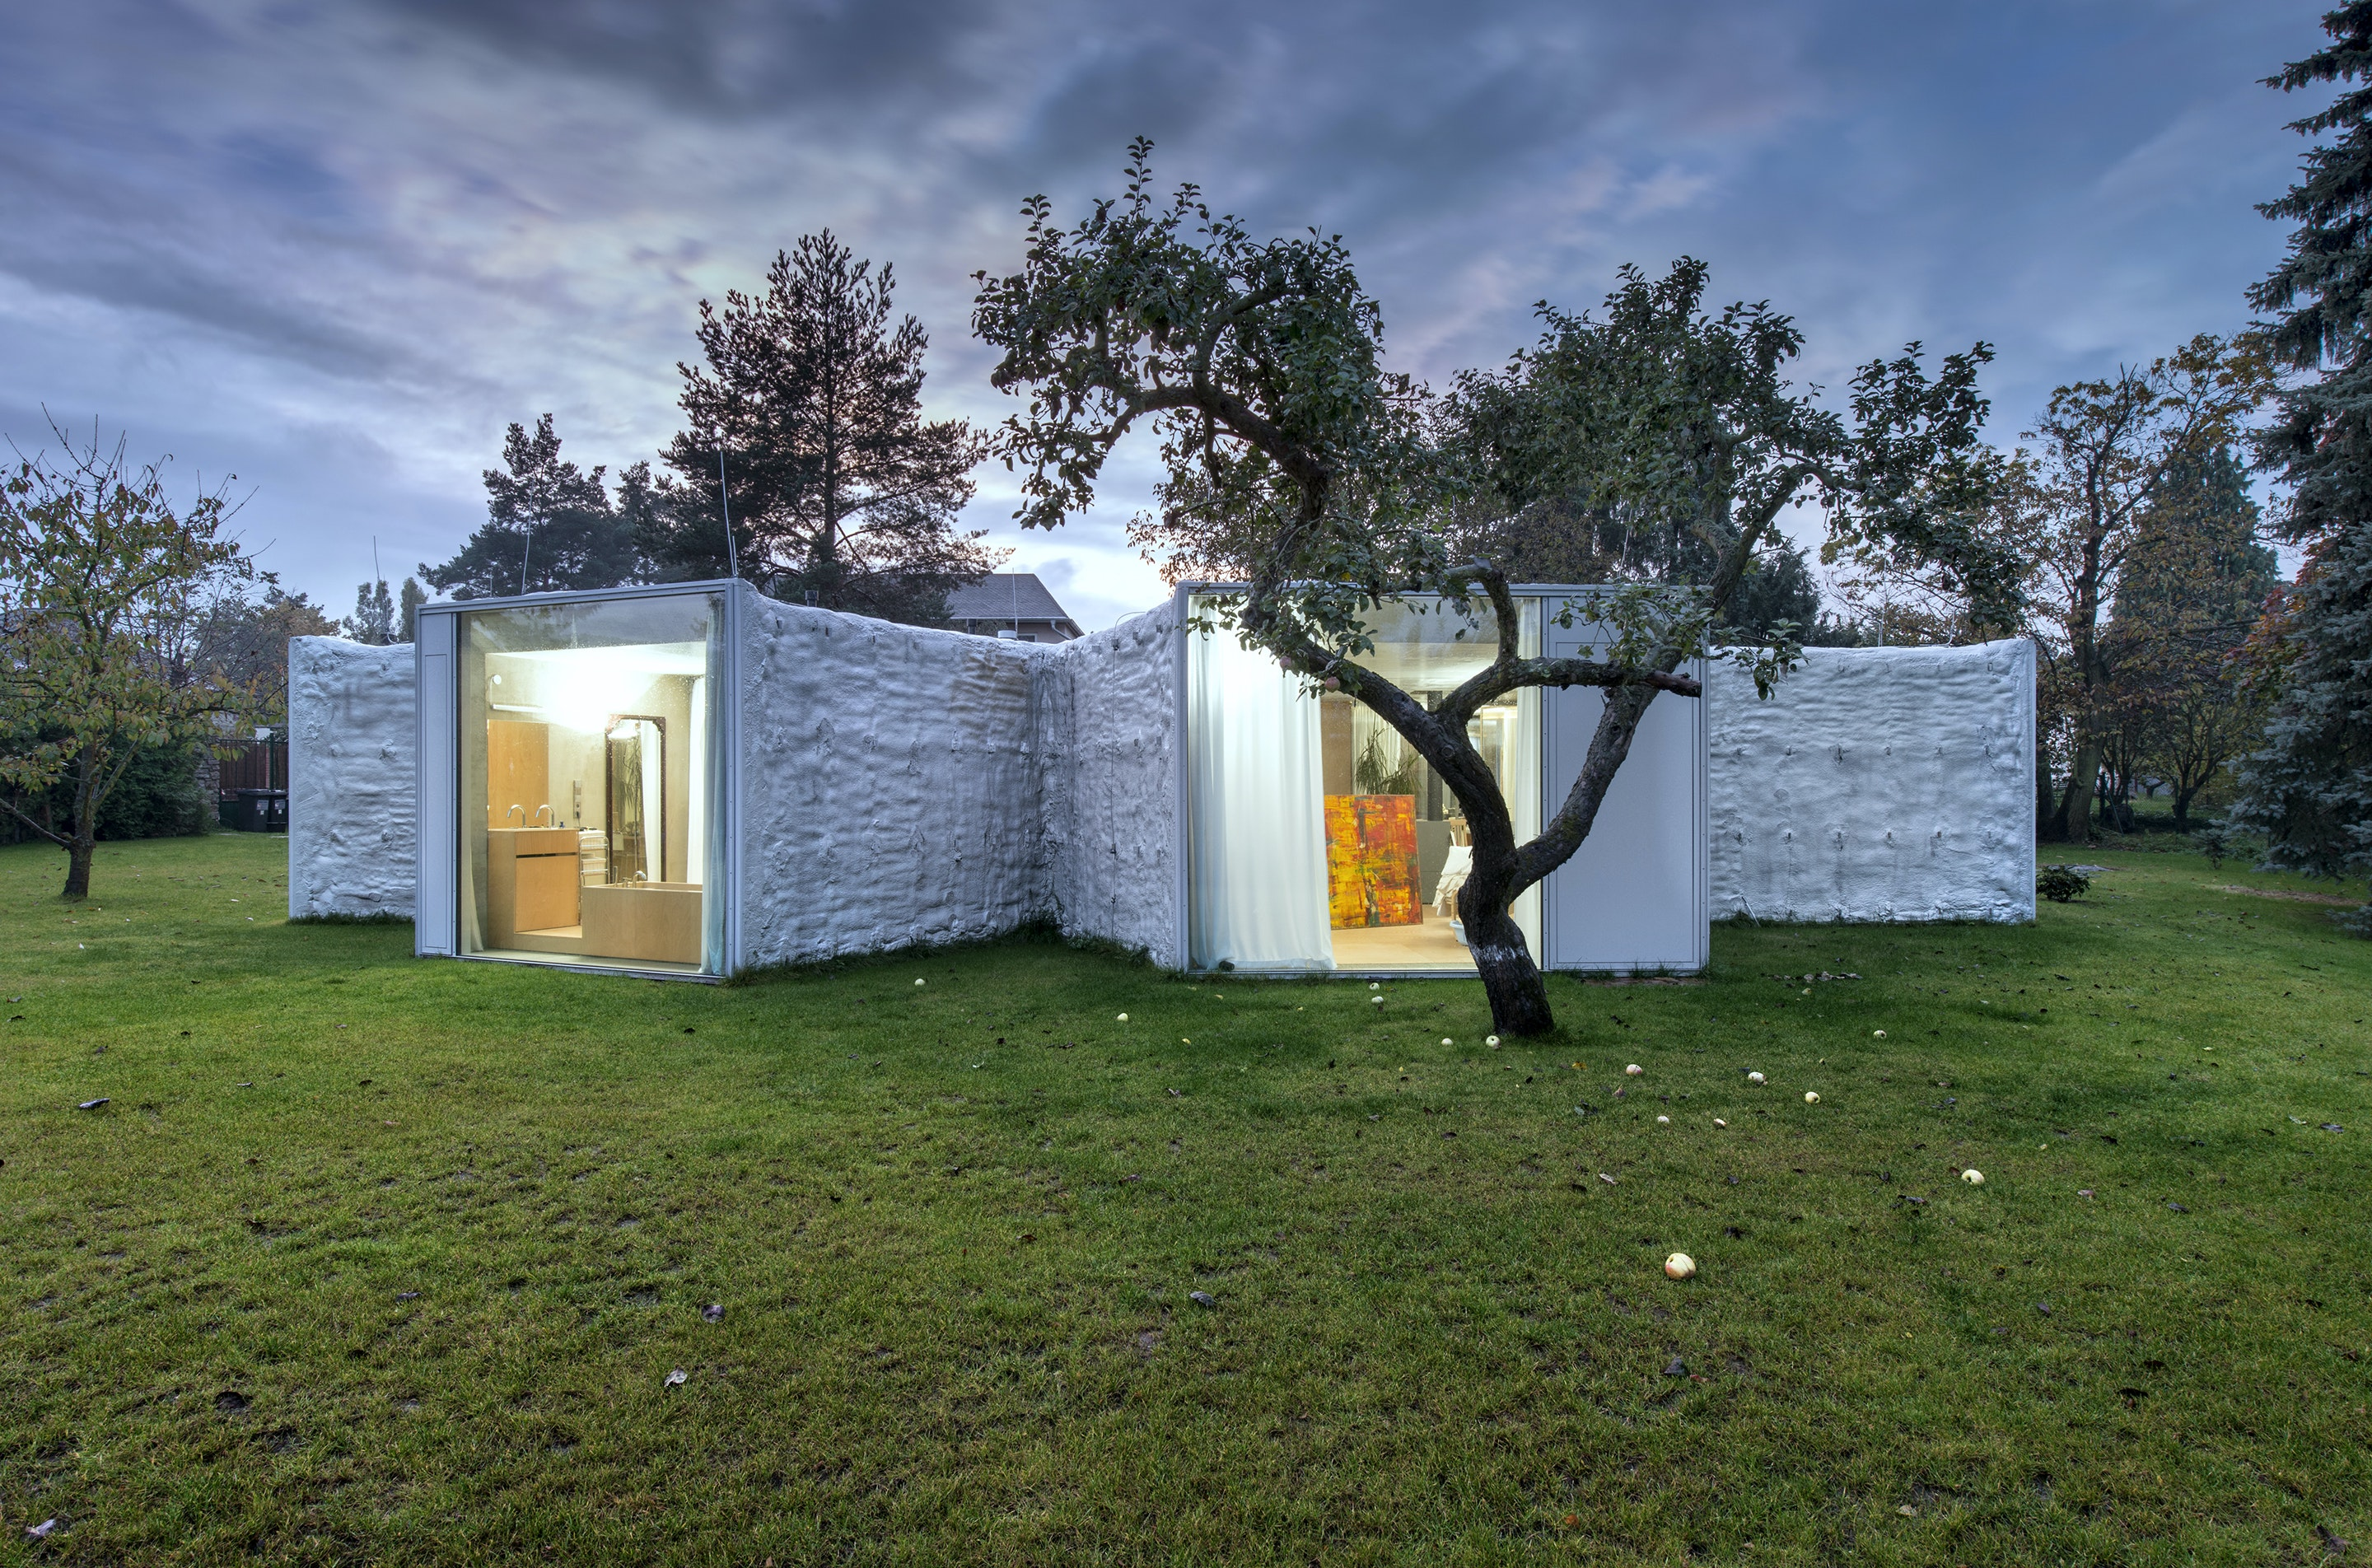 Spatial Oddities: Breaking up Space in 11 Modular Homes